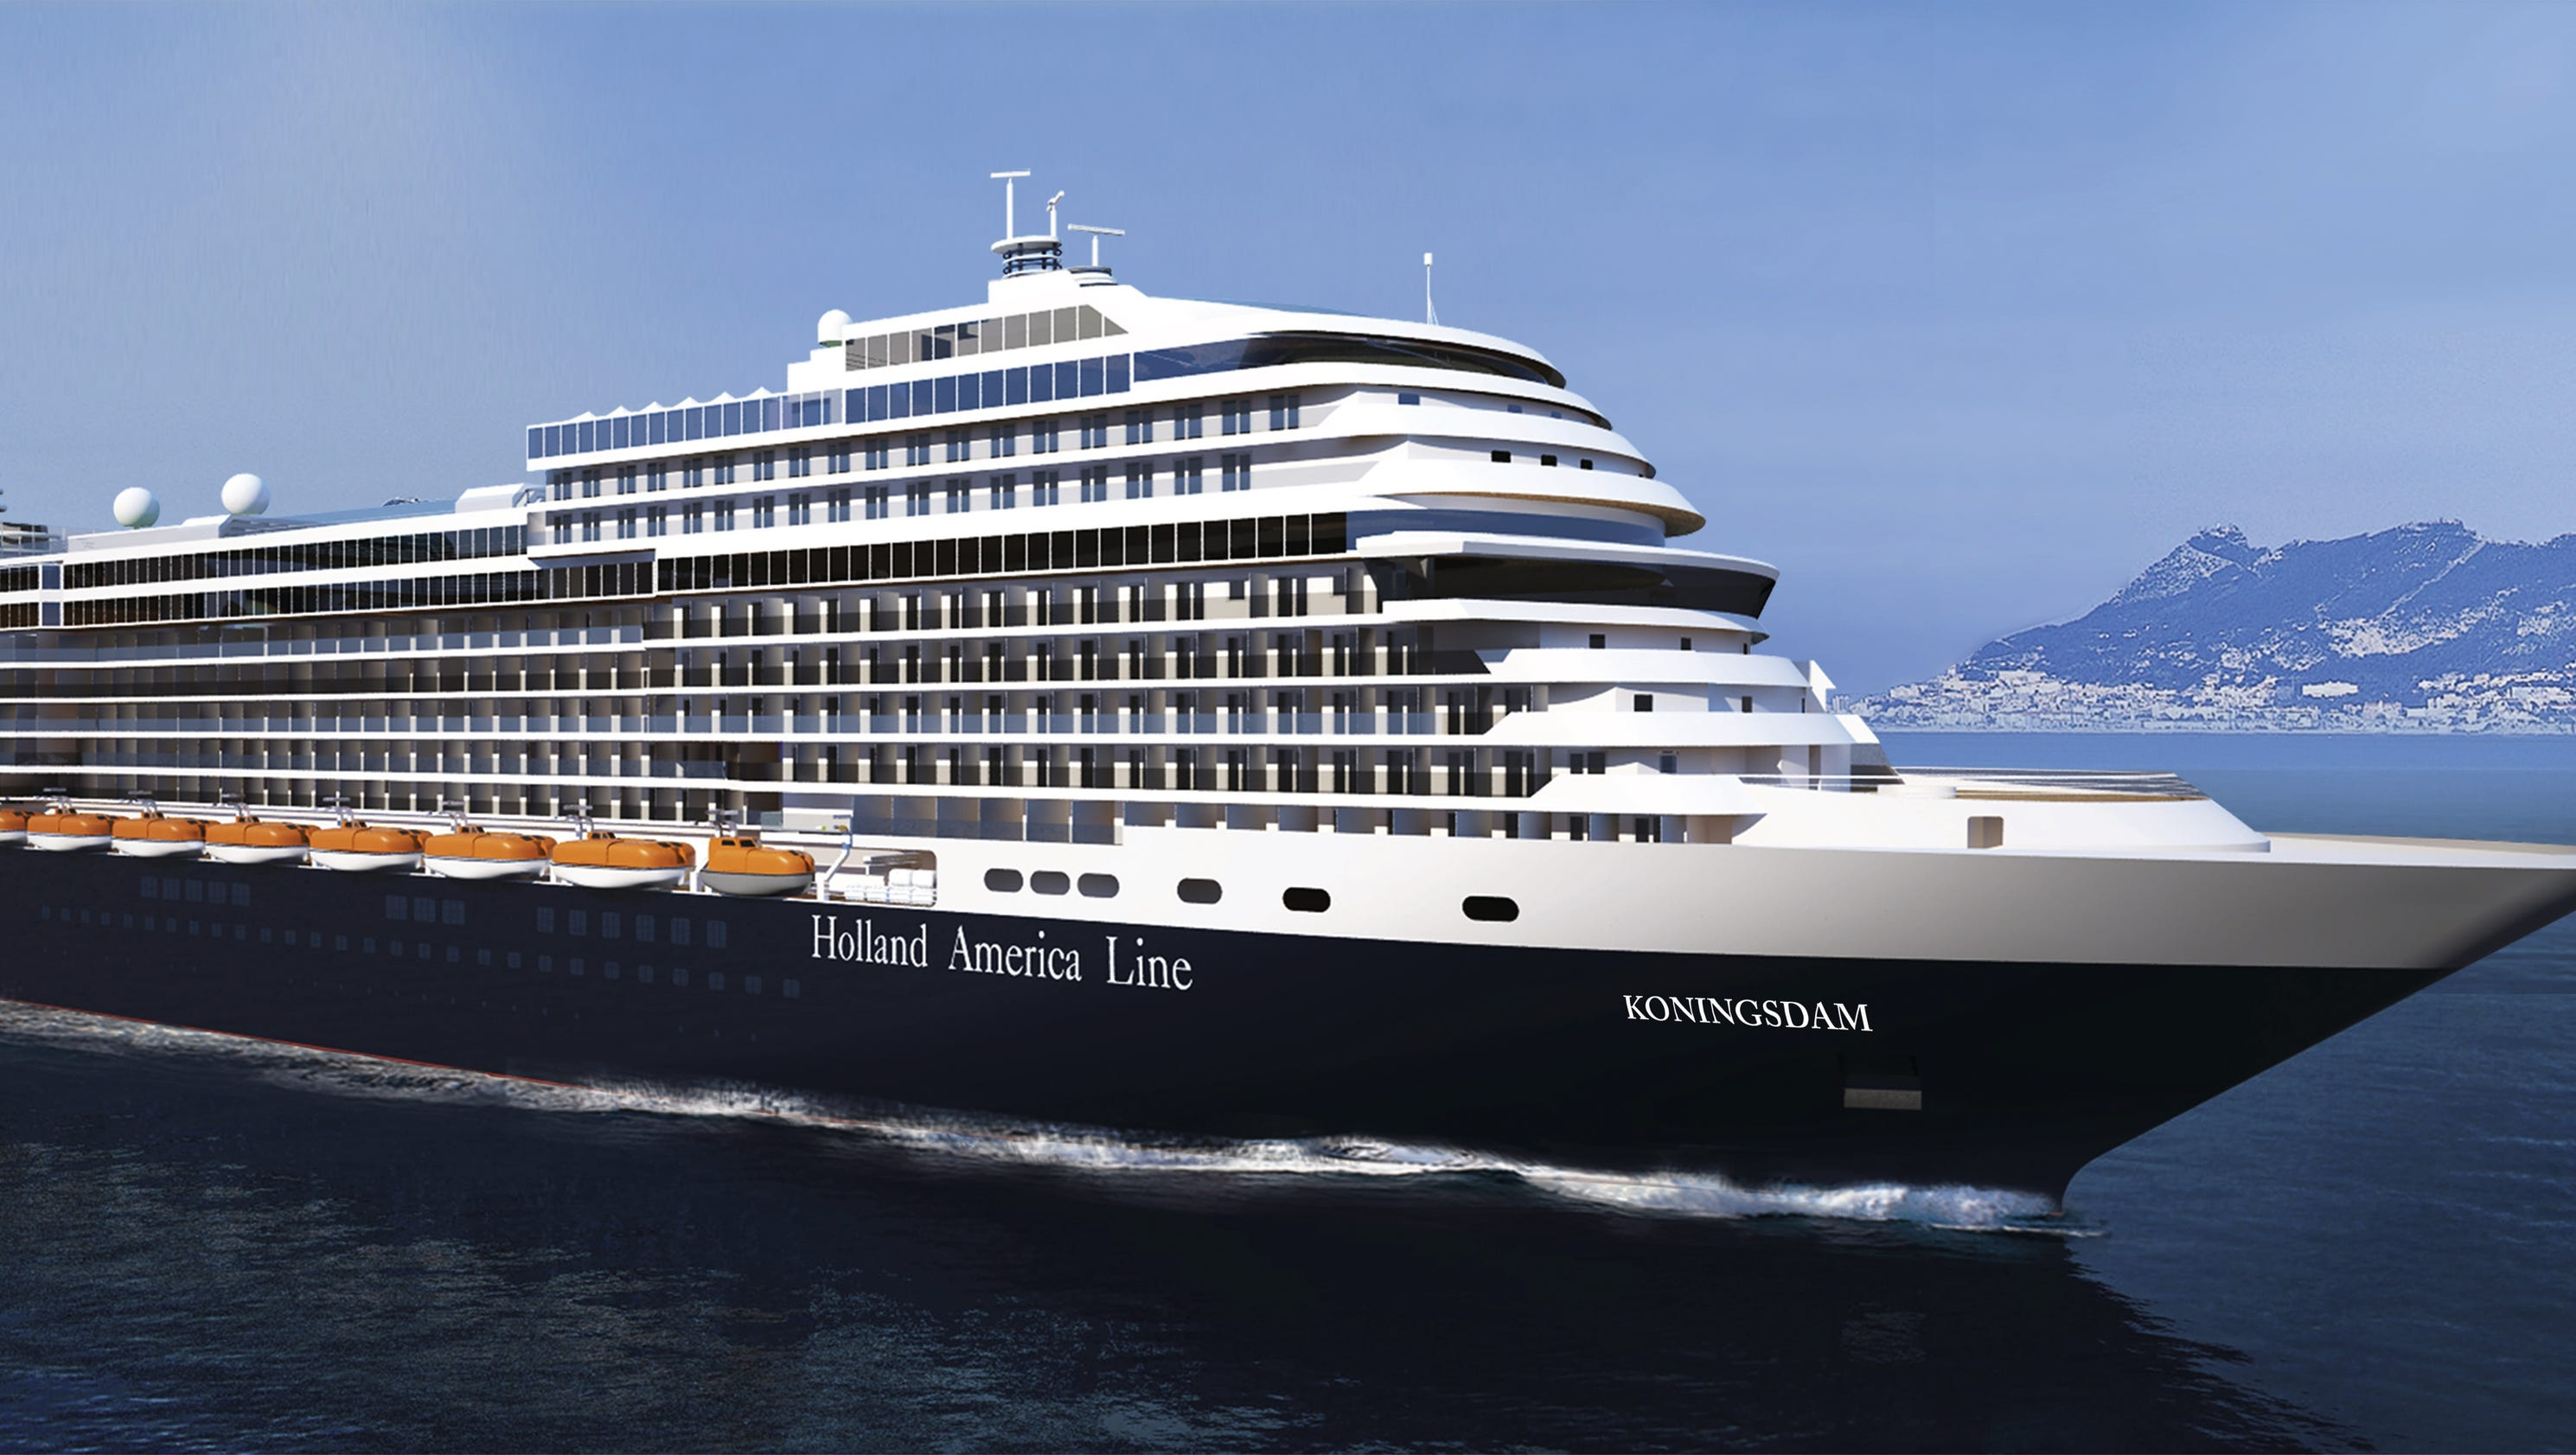 New Cruise Ships For 2016: Holland America's Koningsdam